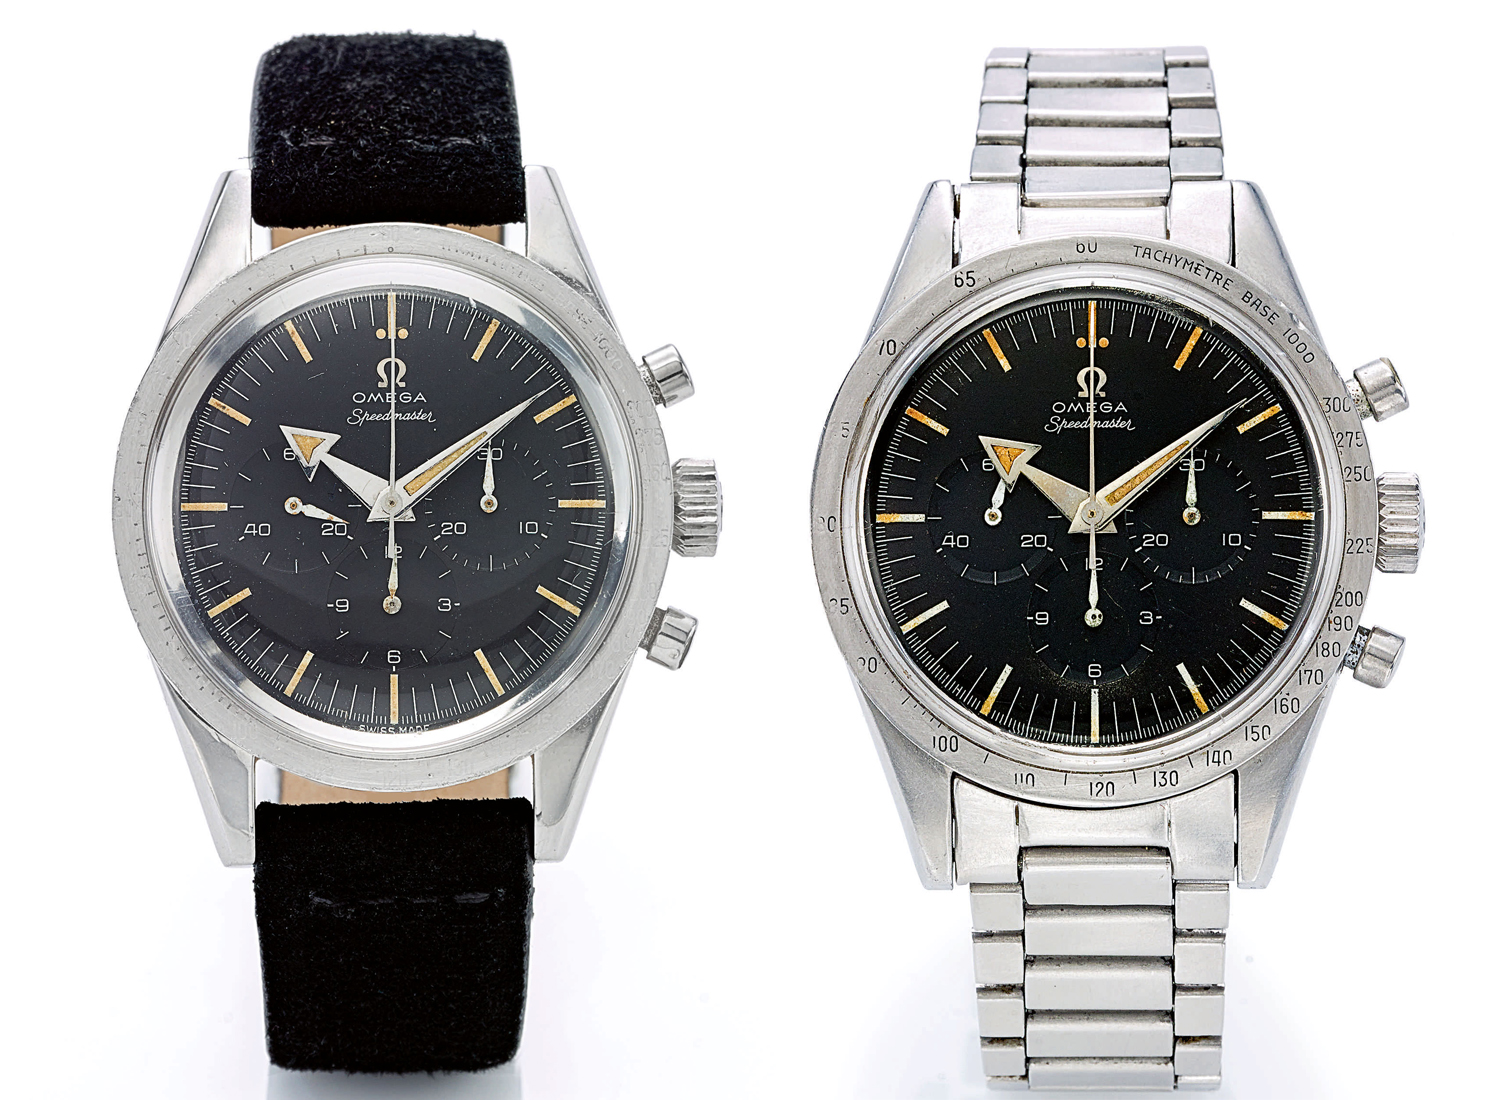 85062b757 Moonwatch sale sets price records at Sotheby's 50th anniversary moon  landing auction